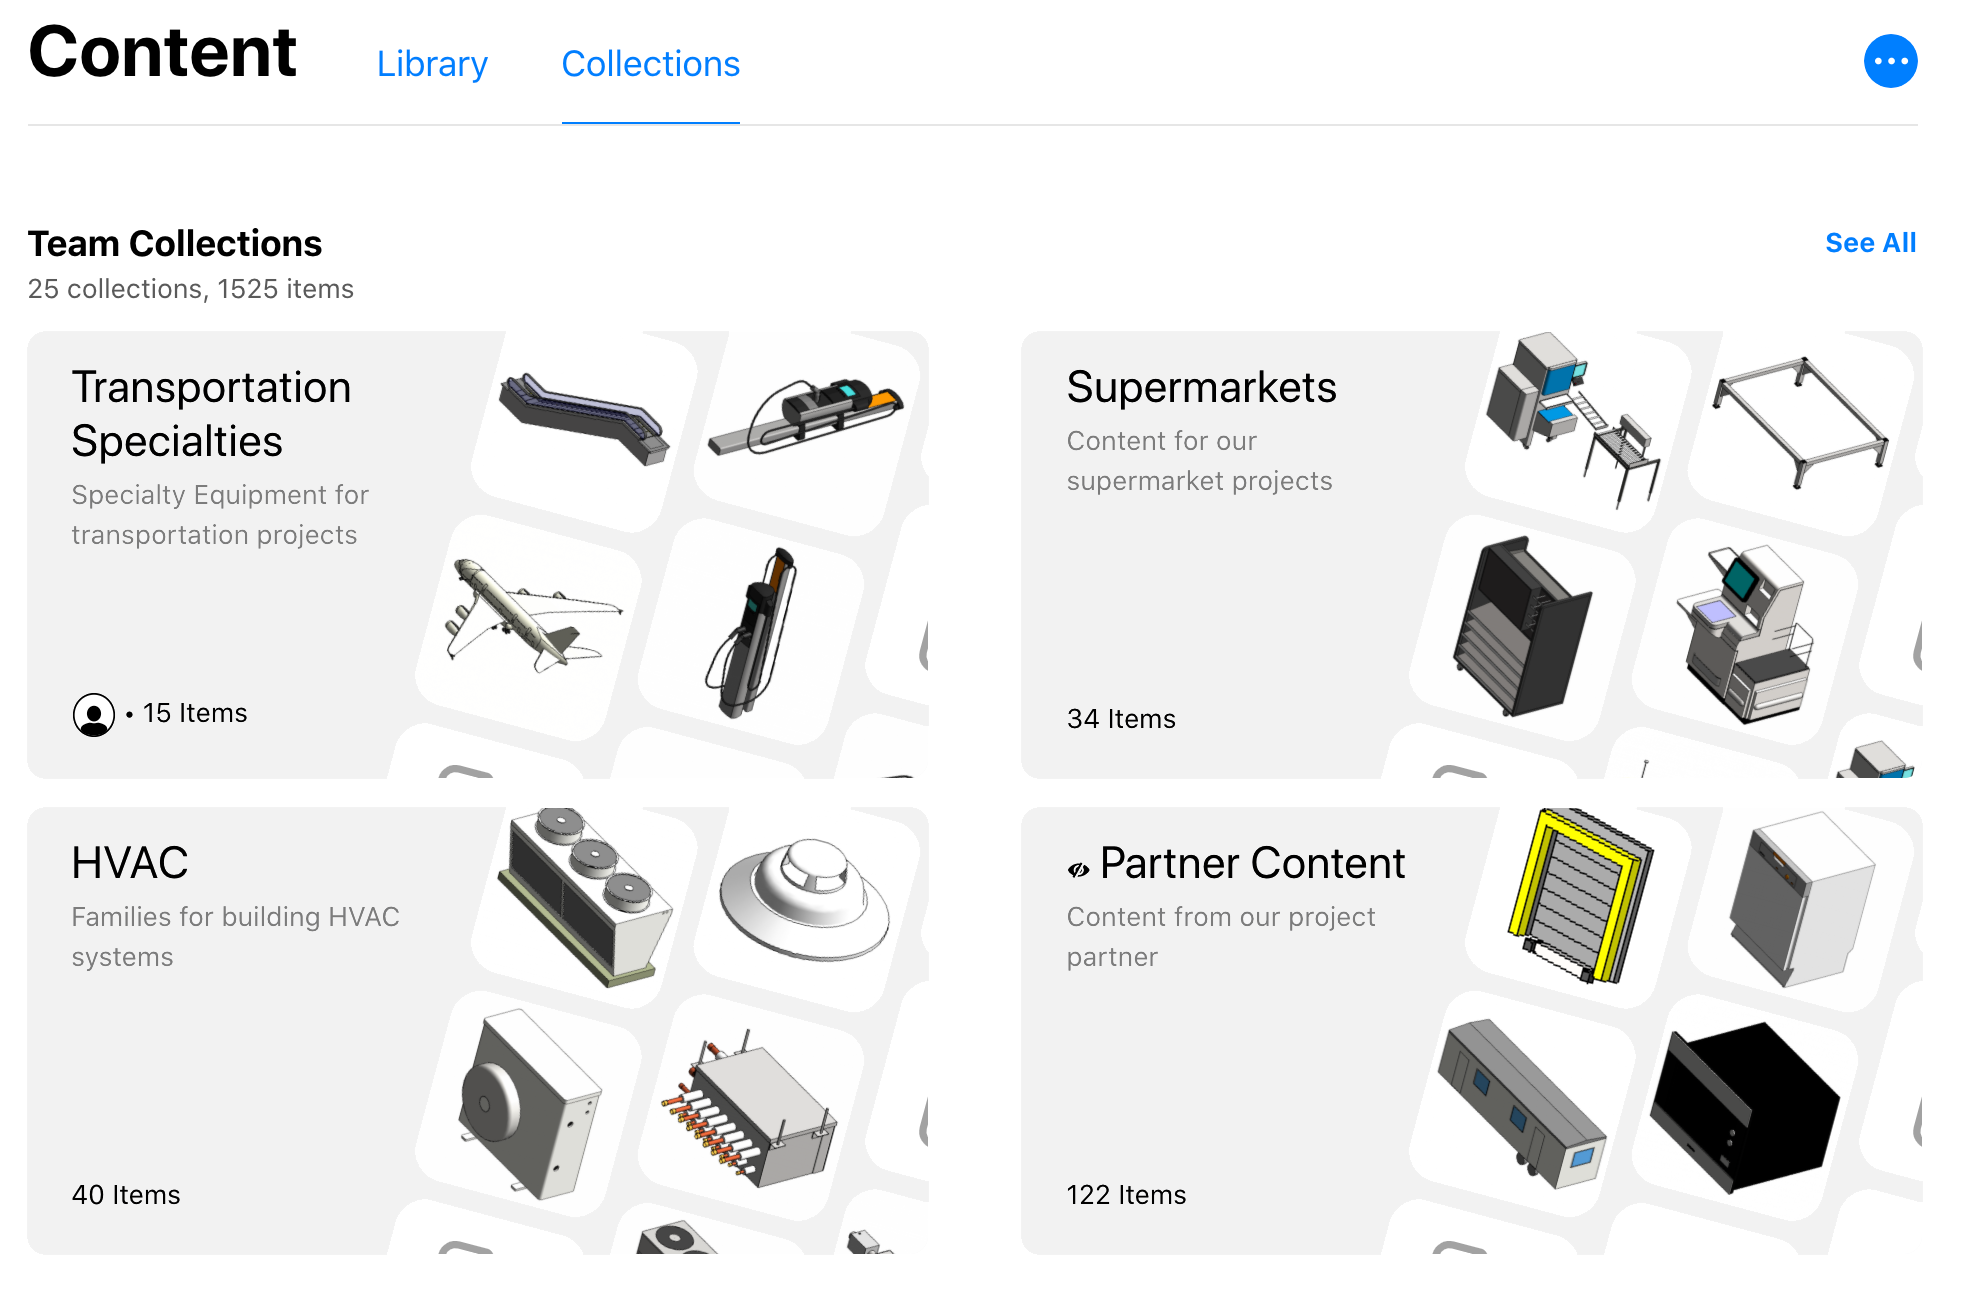 New Collections landing page showing the most recently updated Team collections.